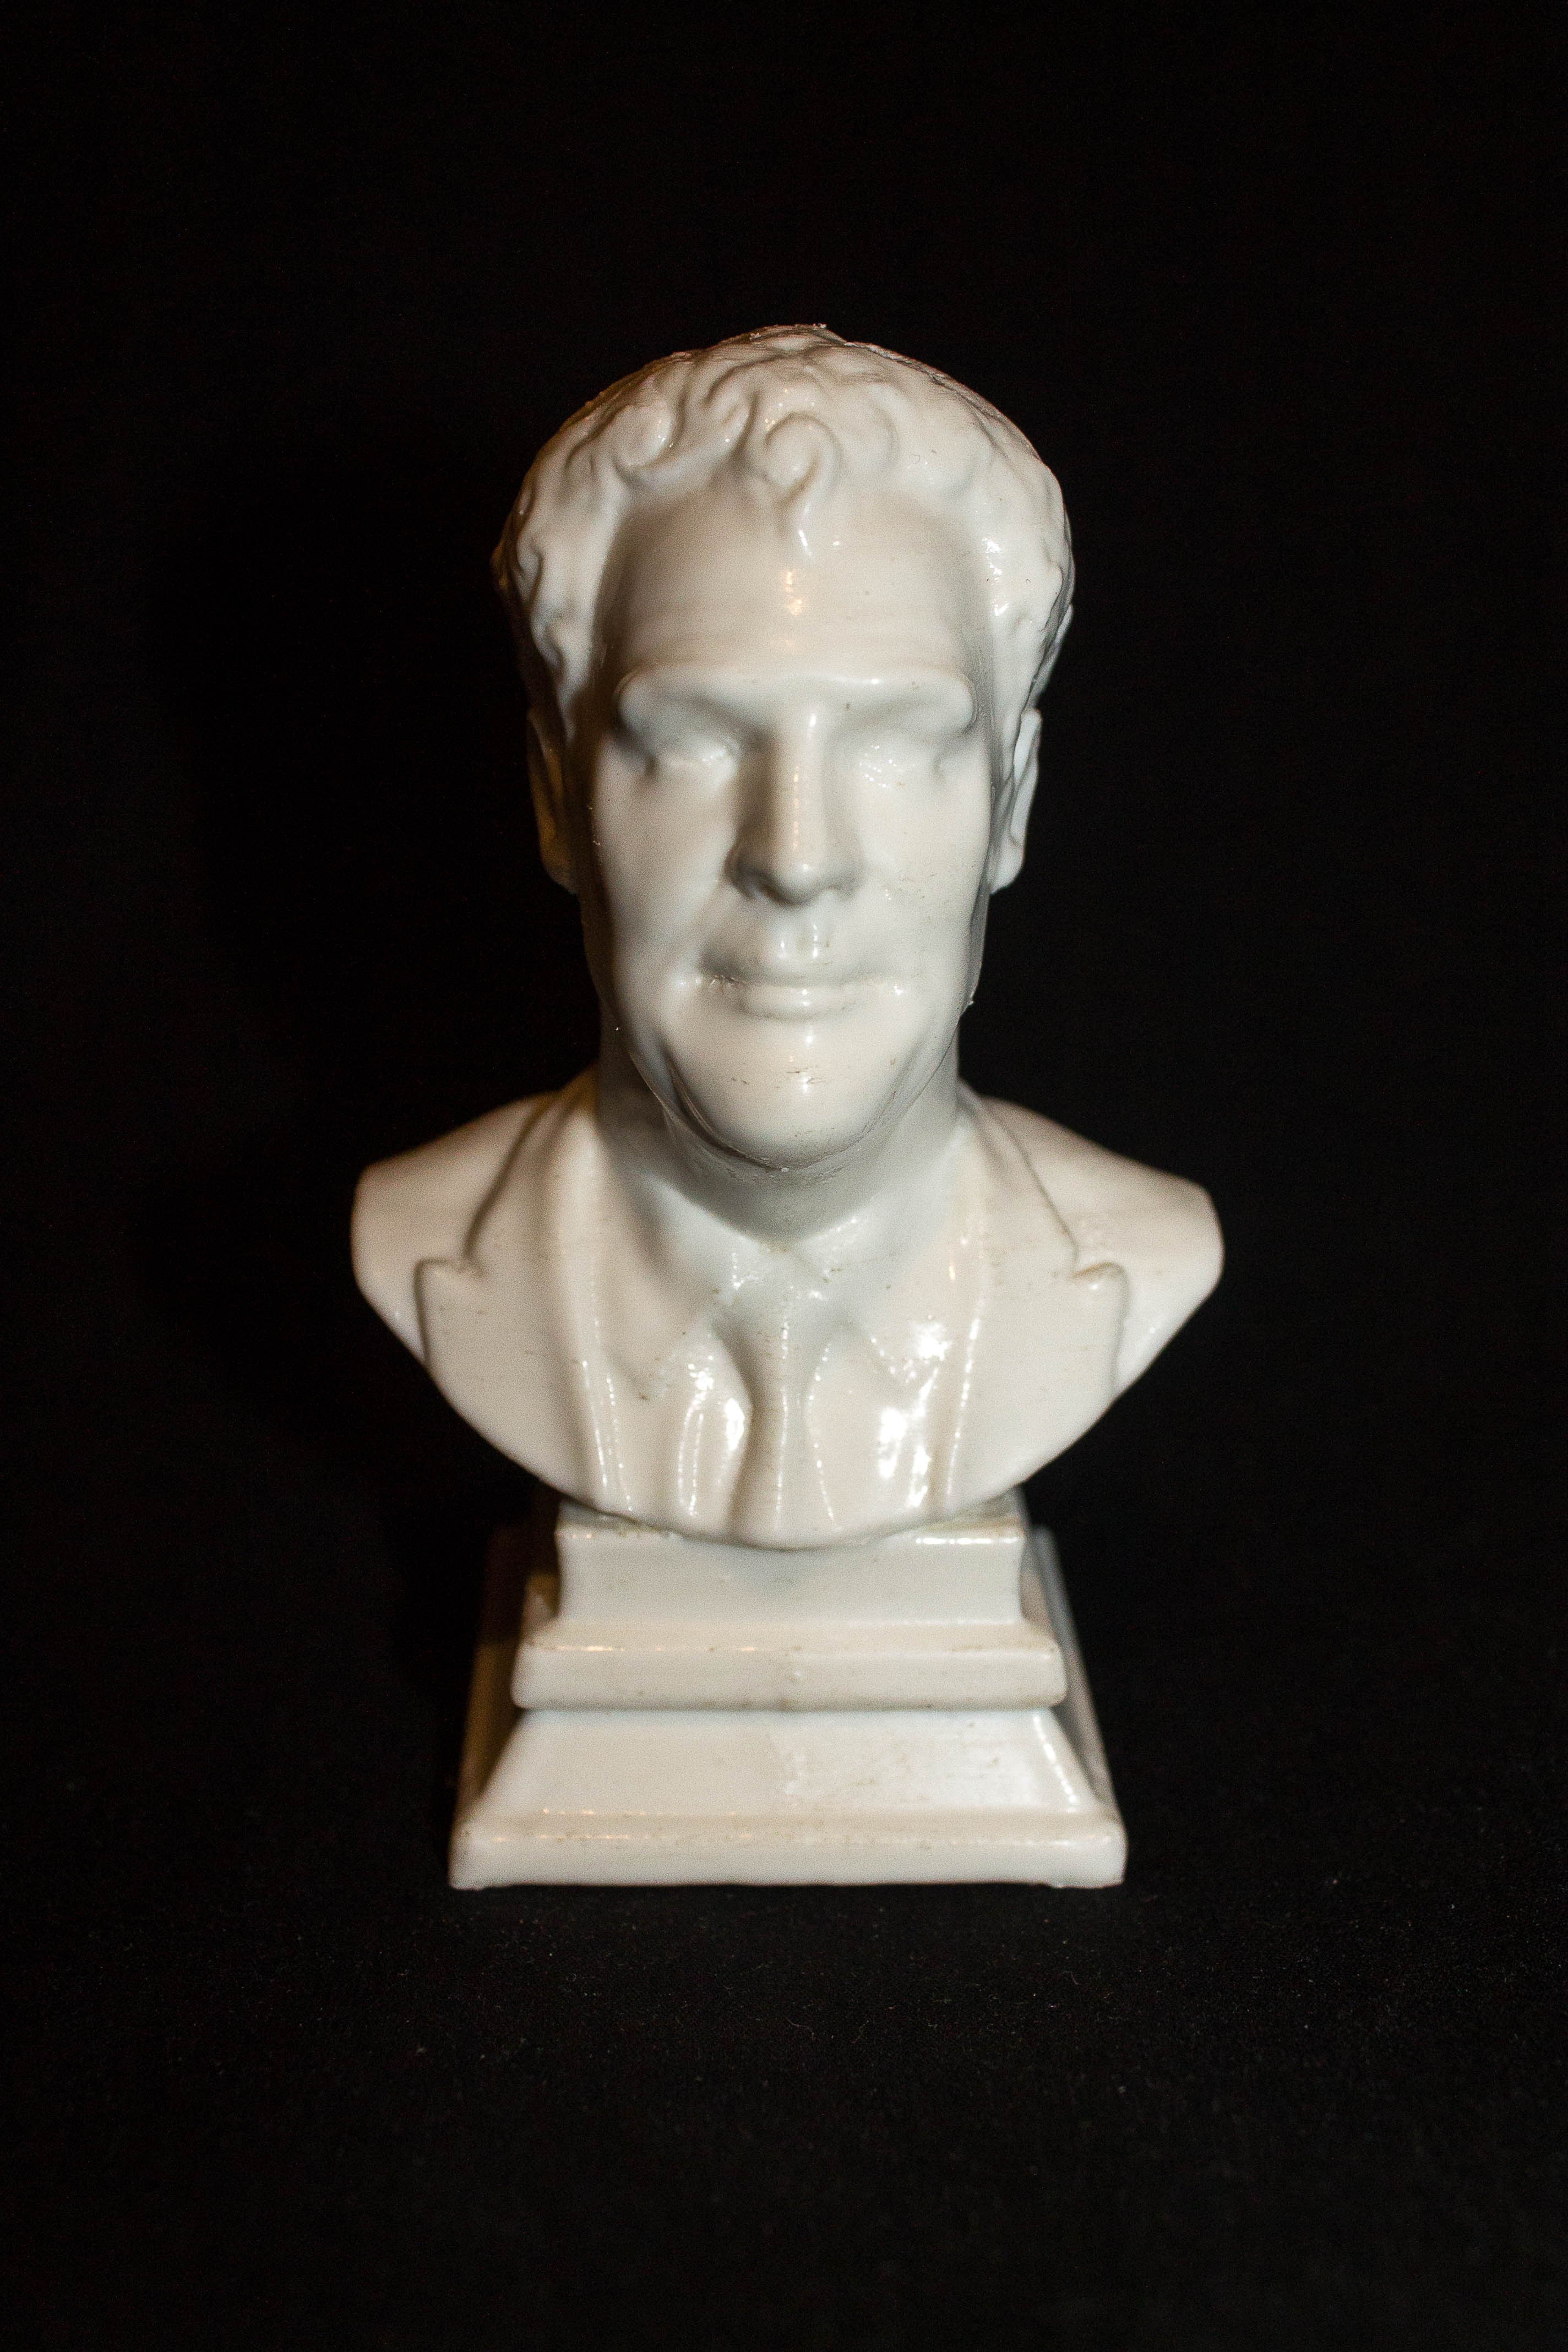 IMG_4896.jpg Download STL file Bust of Jeremy Clarkson • 3D printing template, trinity760